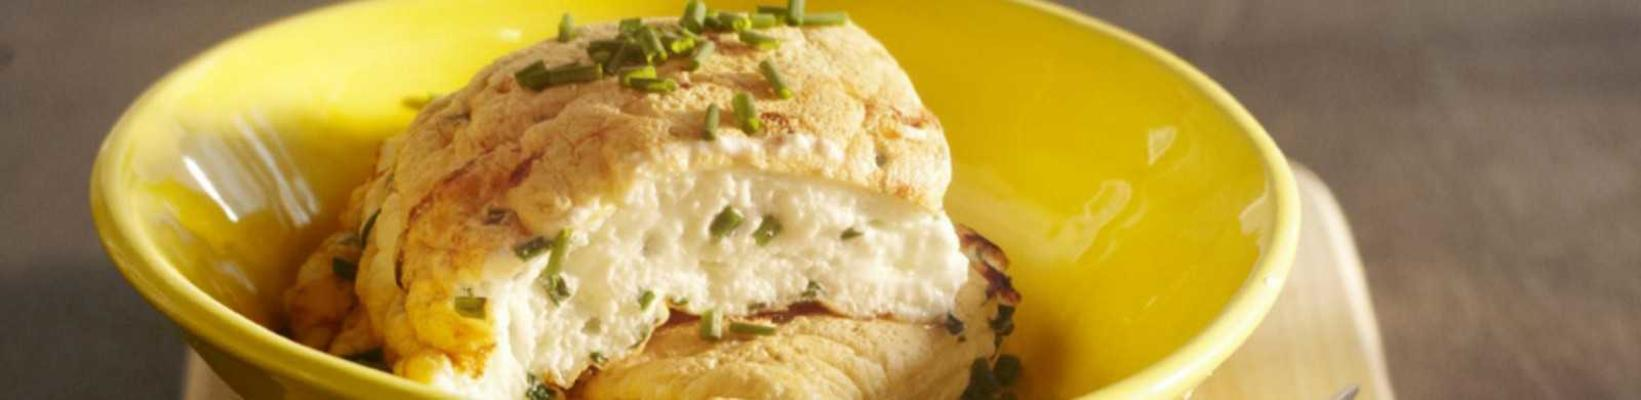 omelet of protein with goat cheese and chives